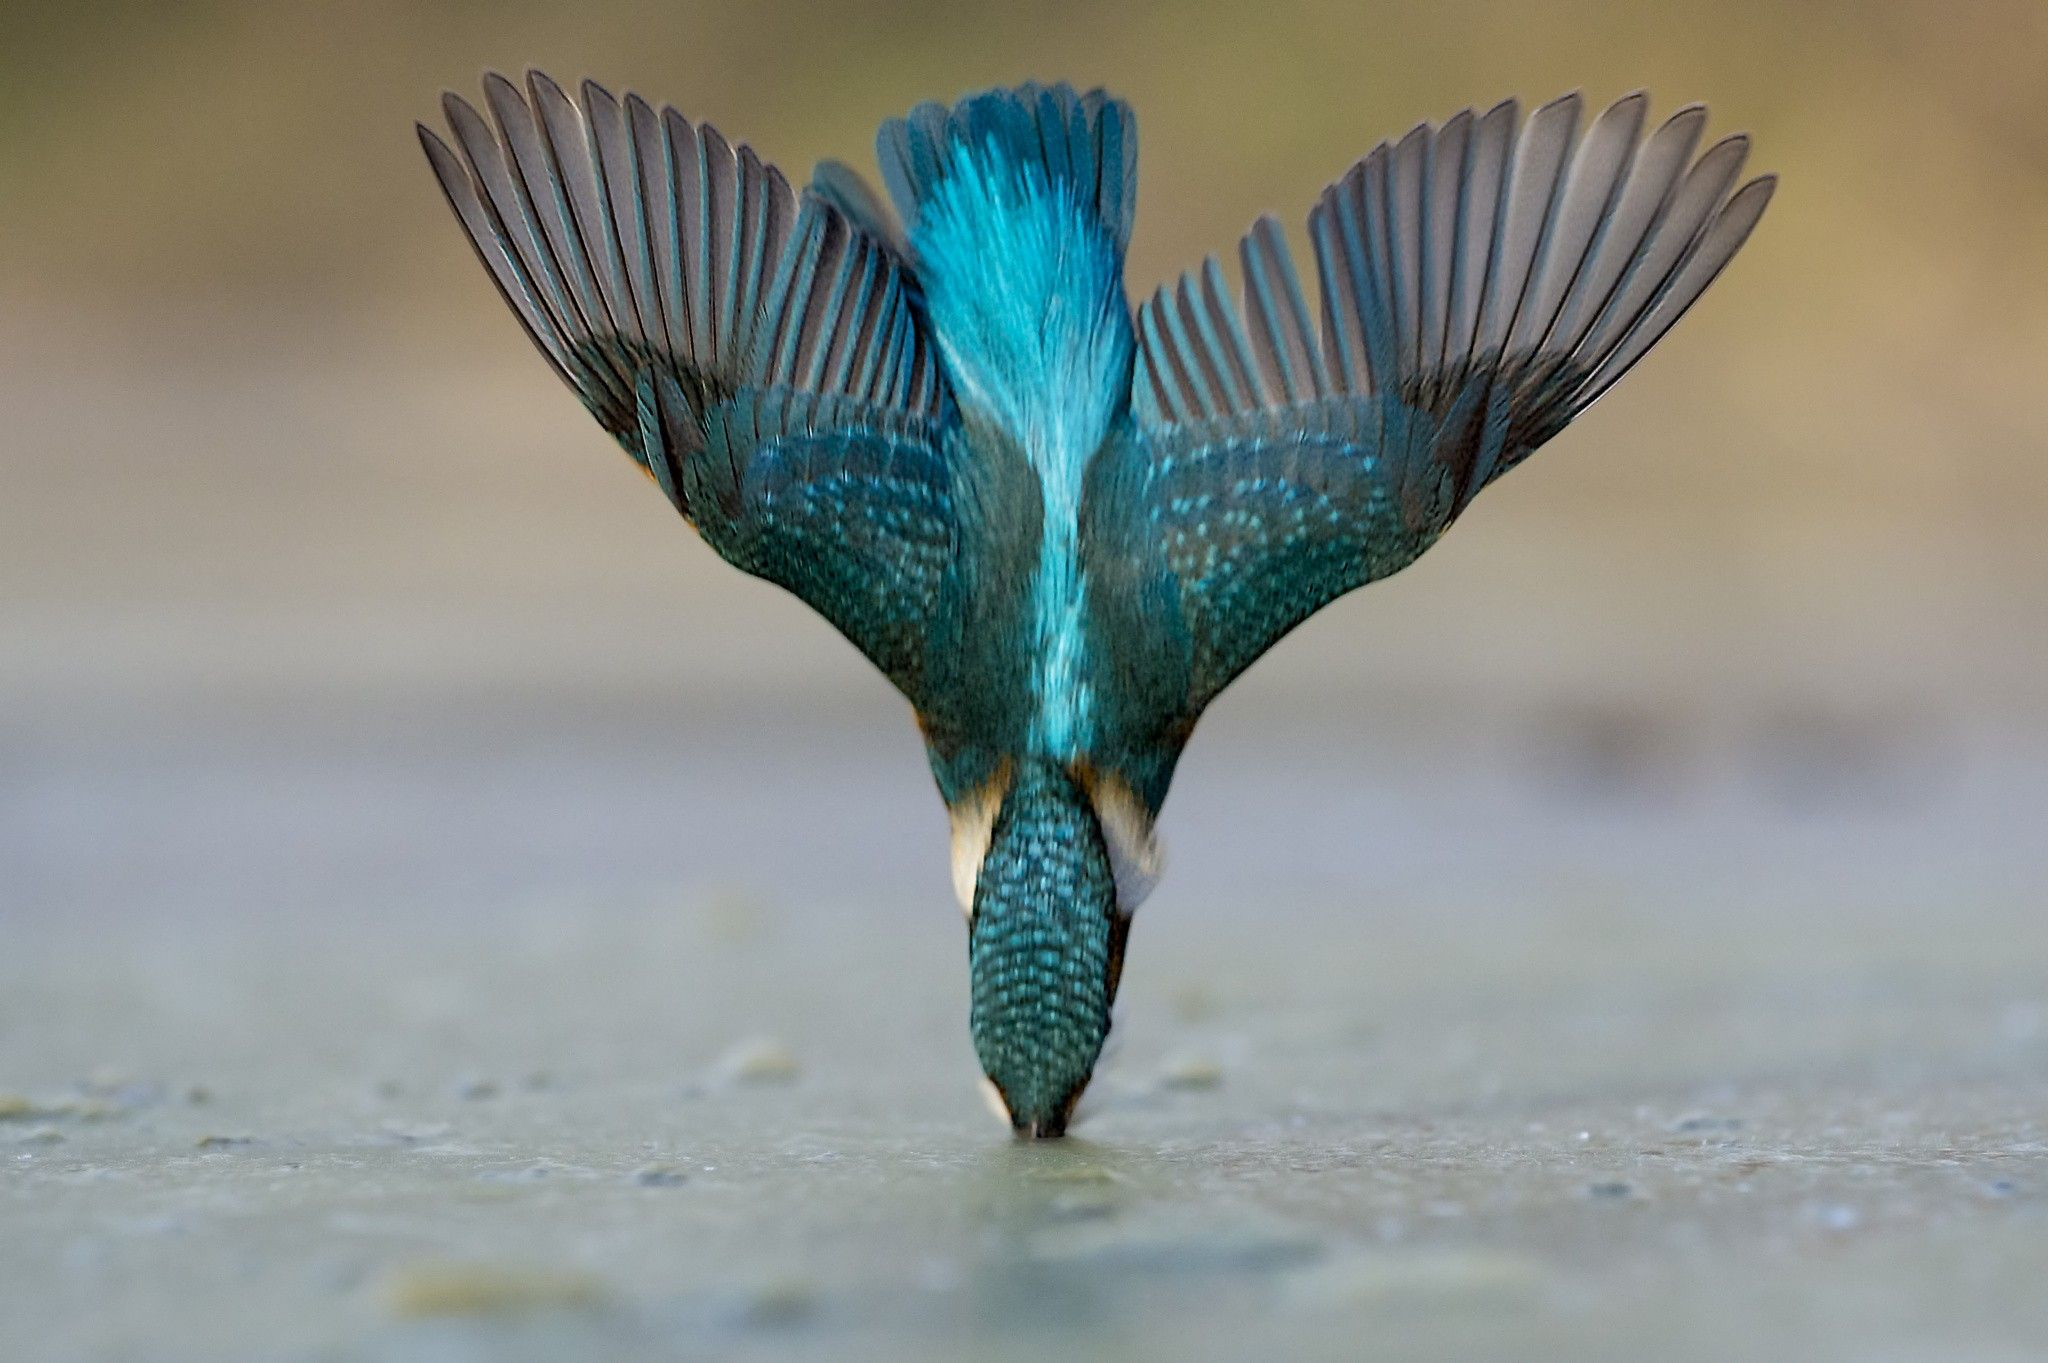 Pin by helinton fantin on photography pinterest wallpaper and bird